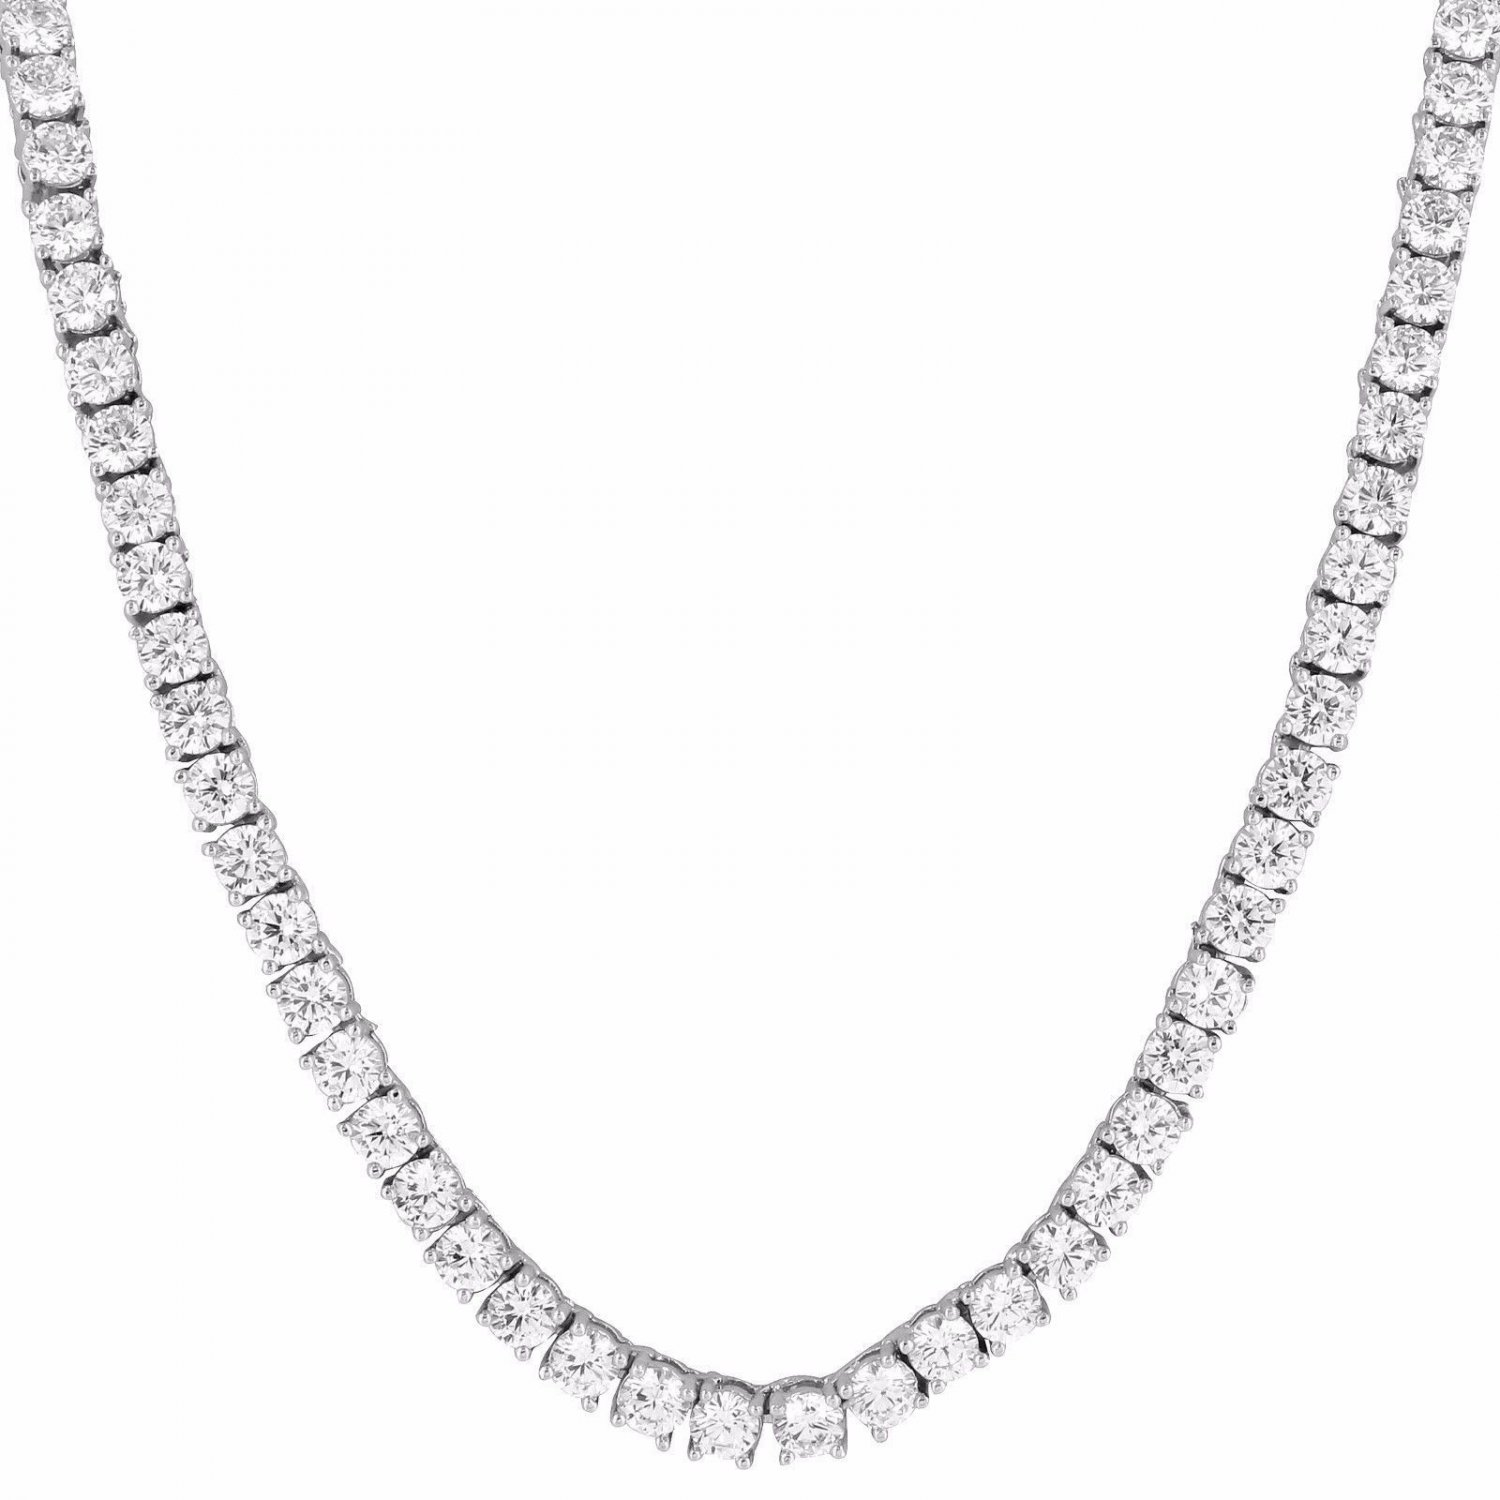 Mens Tennis Necklace 18,20,22,24,26,28 Inch 3mm Chain 1 Row Solitaire Diamonds